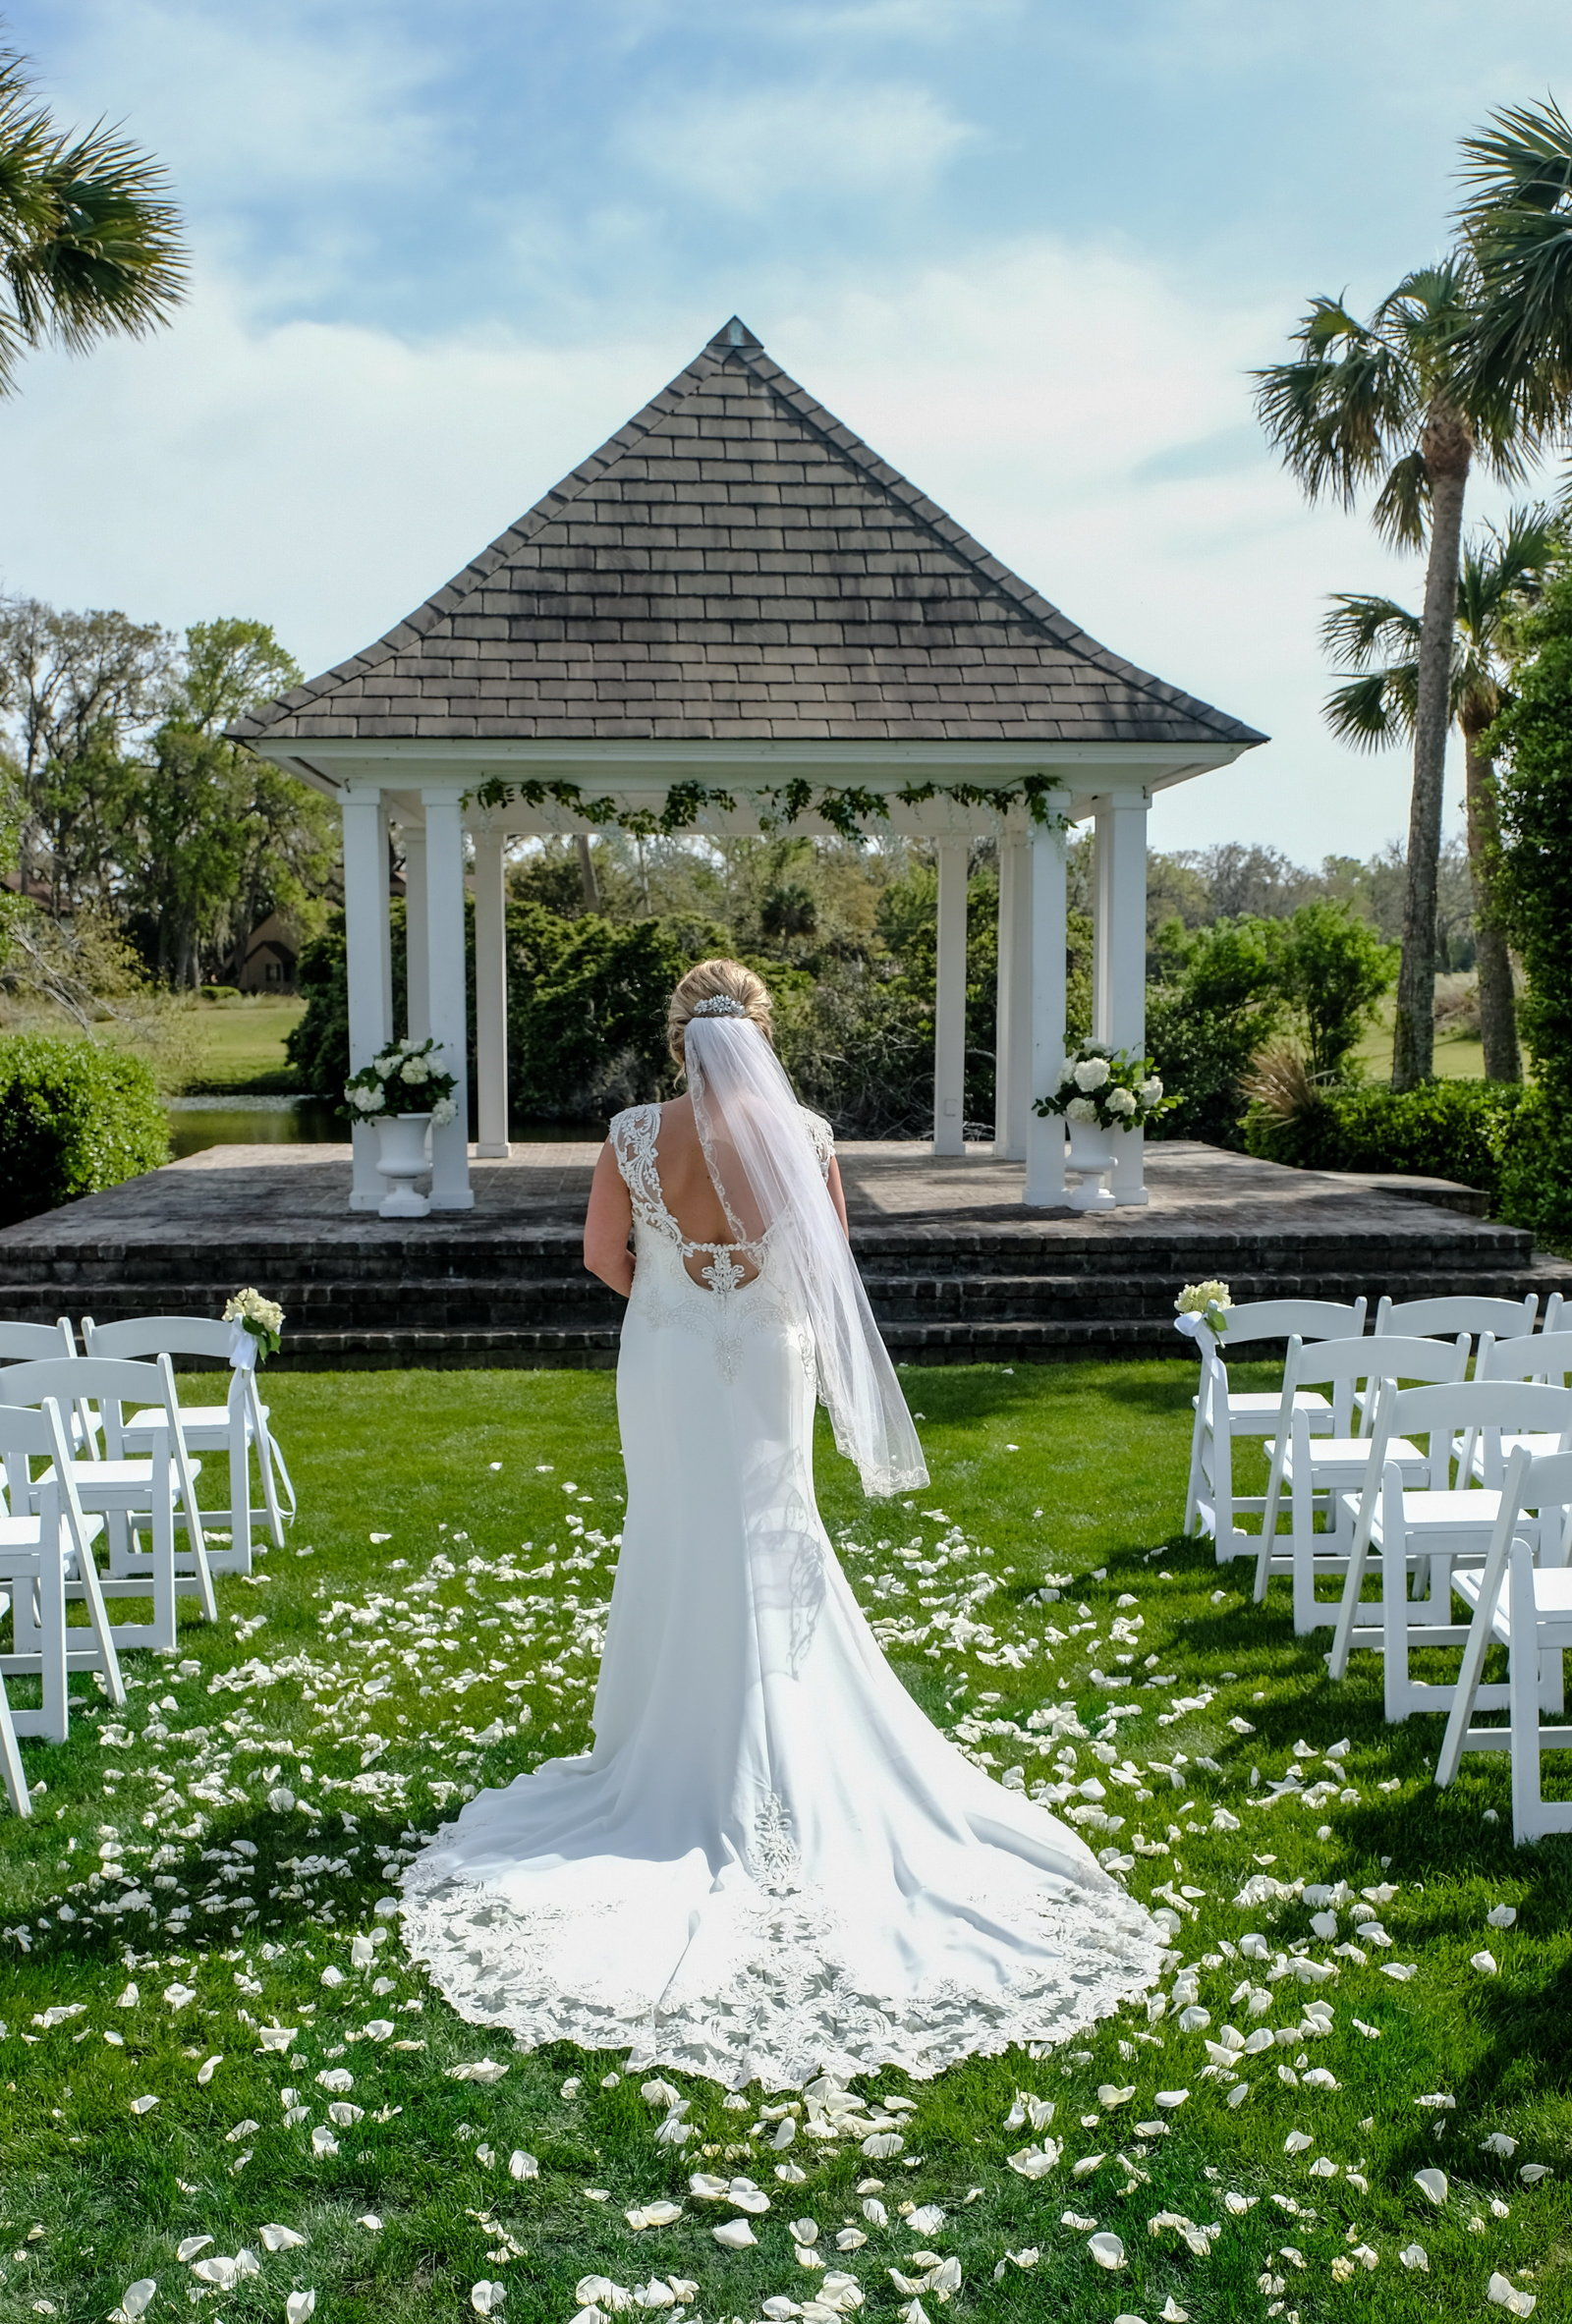 Sea Palms Resort Wedding, Bobbi Brinkman Photography, Libby + Steven